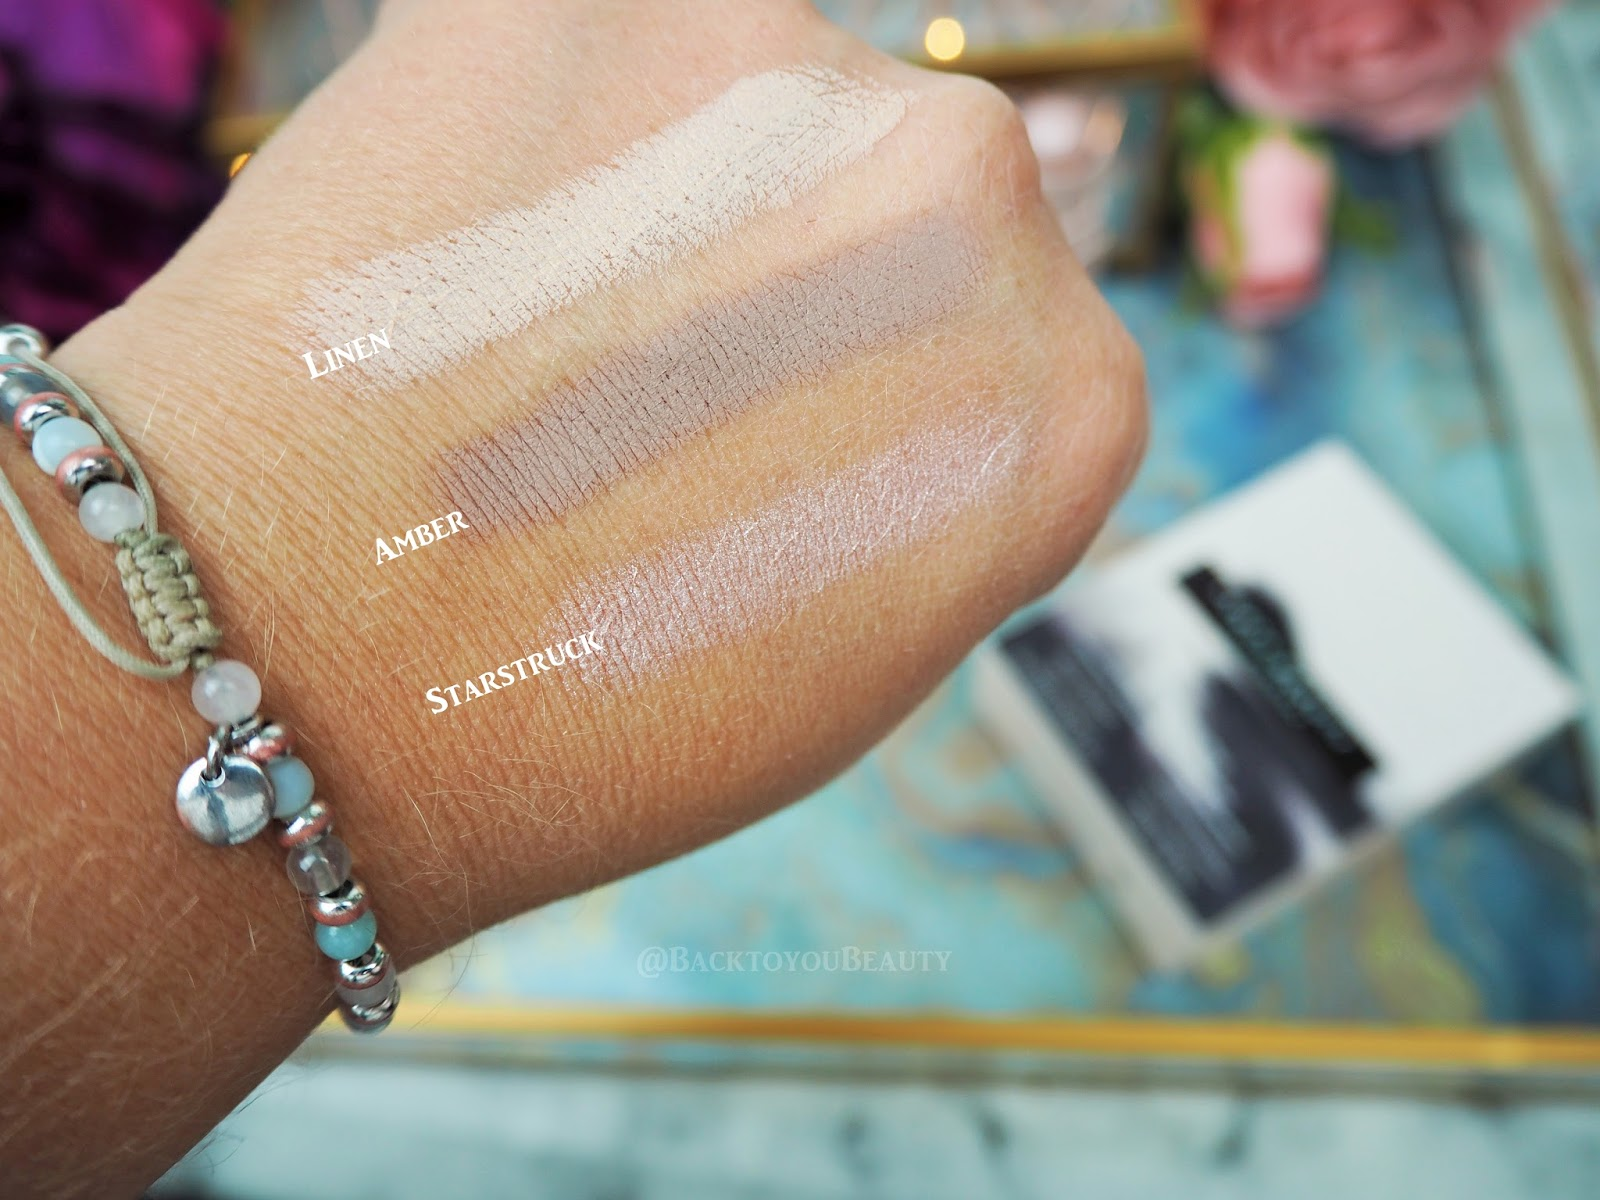 Fenty Beauty Match Stix Swatches